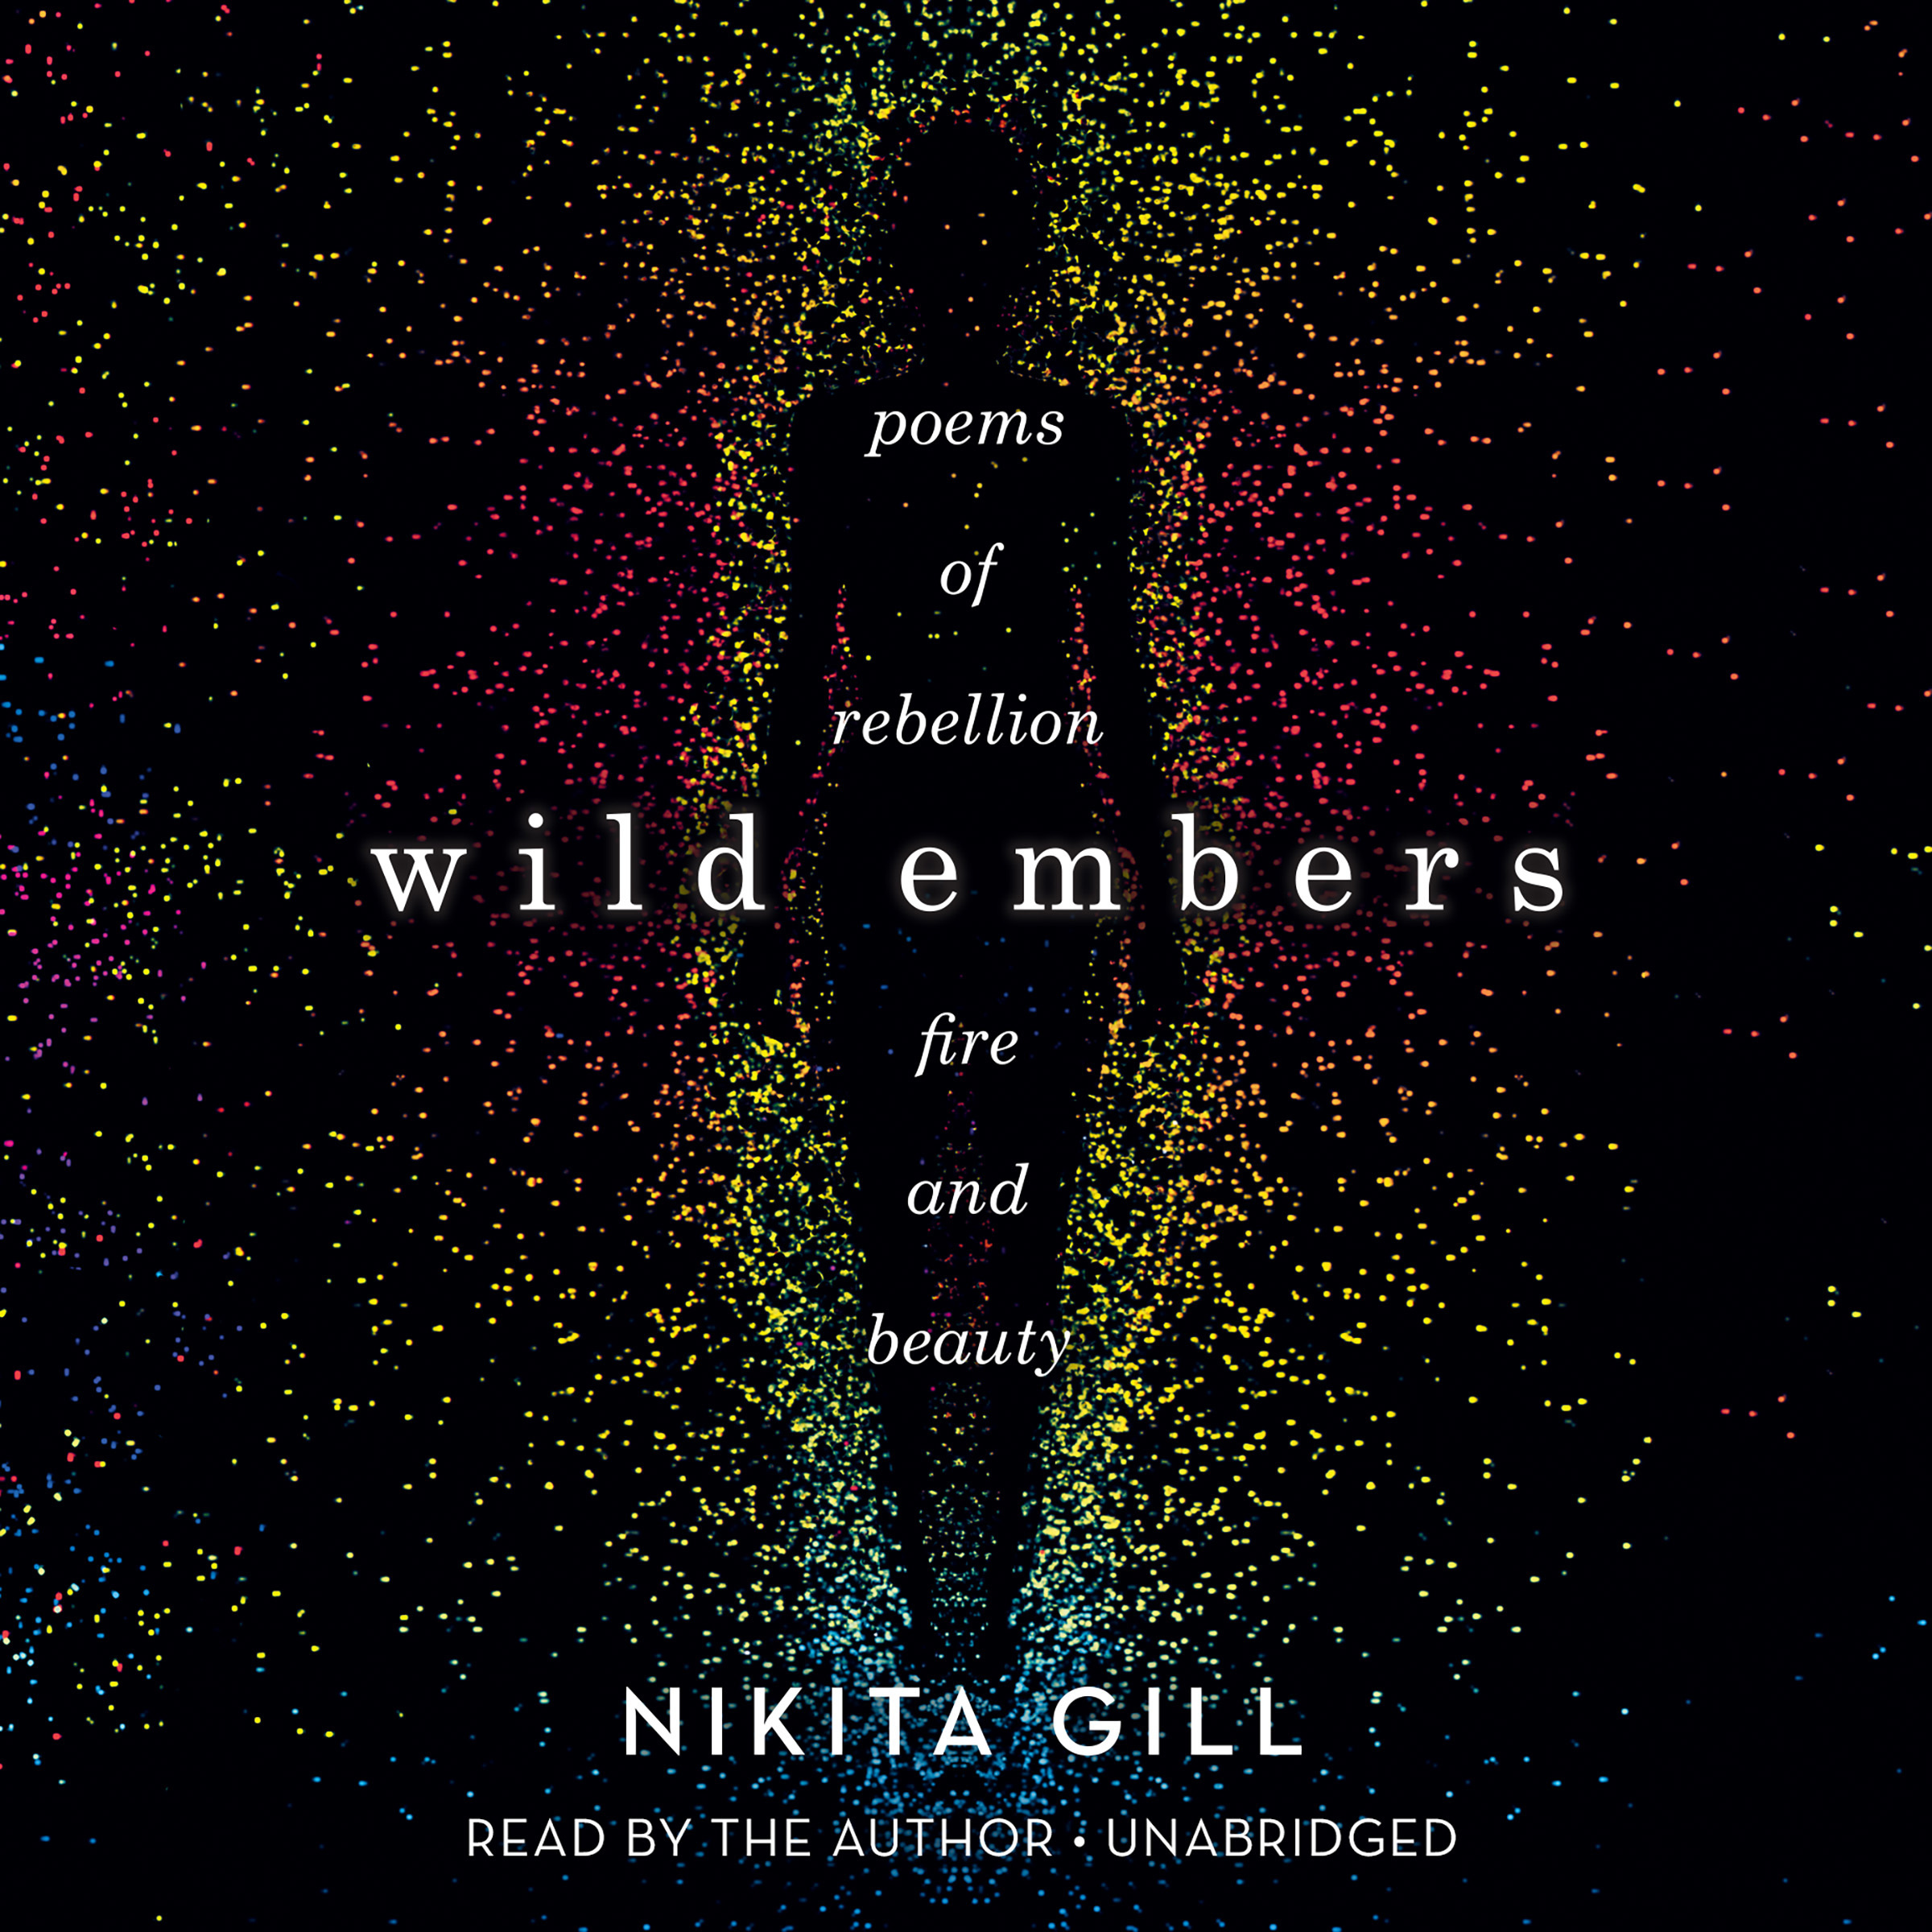 Printable Wild Embers: Poems of Rebellion, Fire, and Beauty Audiobook Cover Art